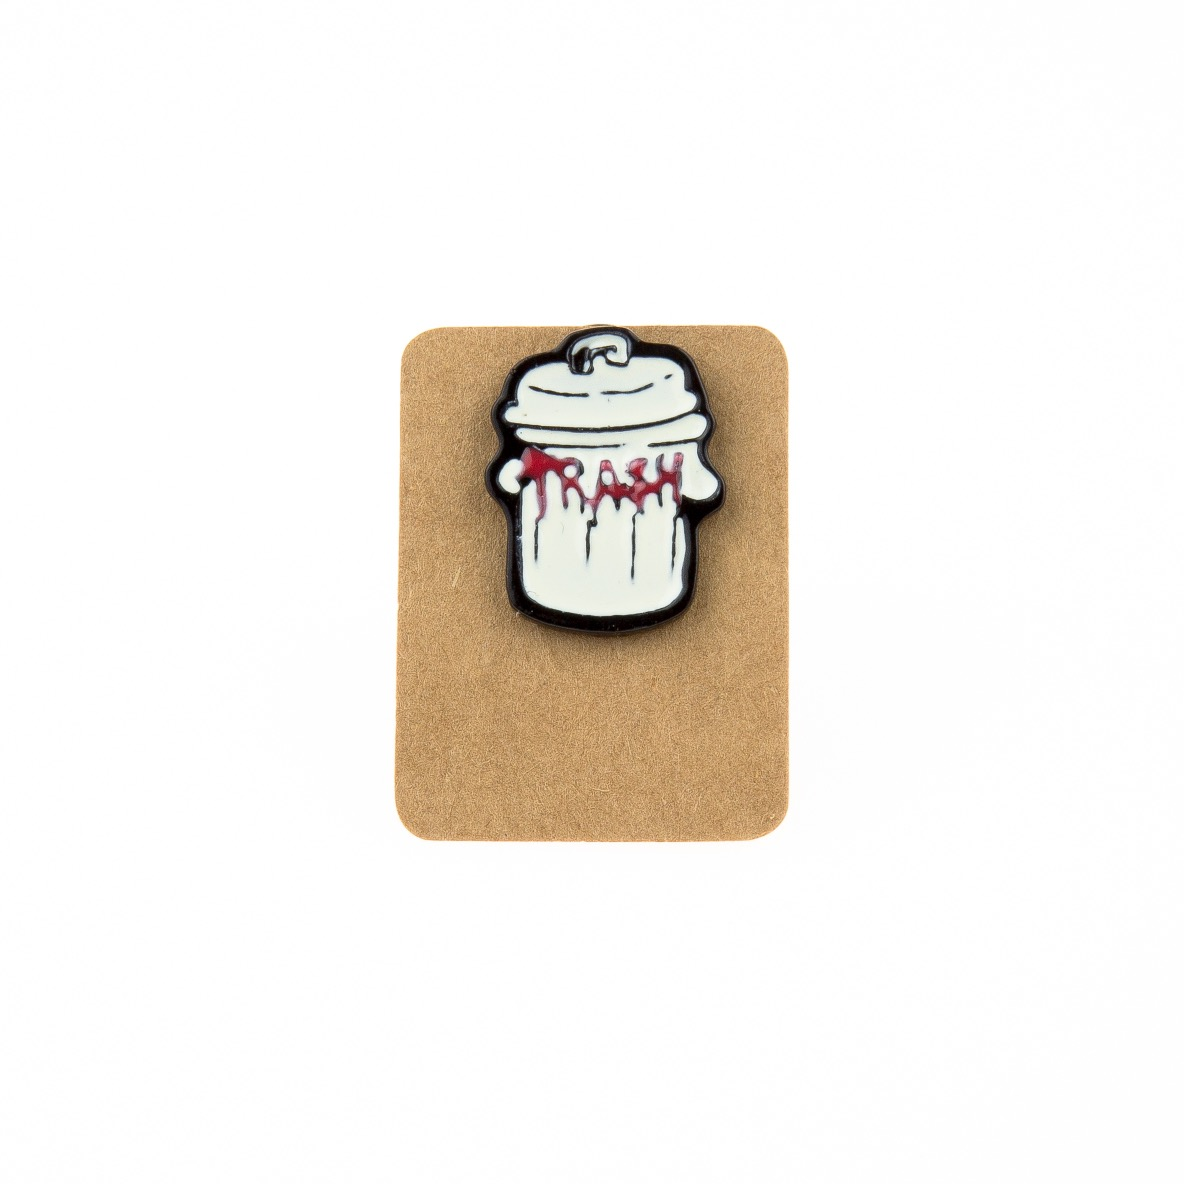 Metal Trash Enamel Pin Badge